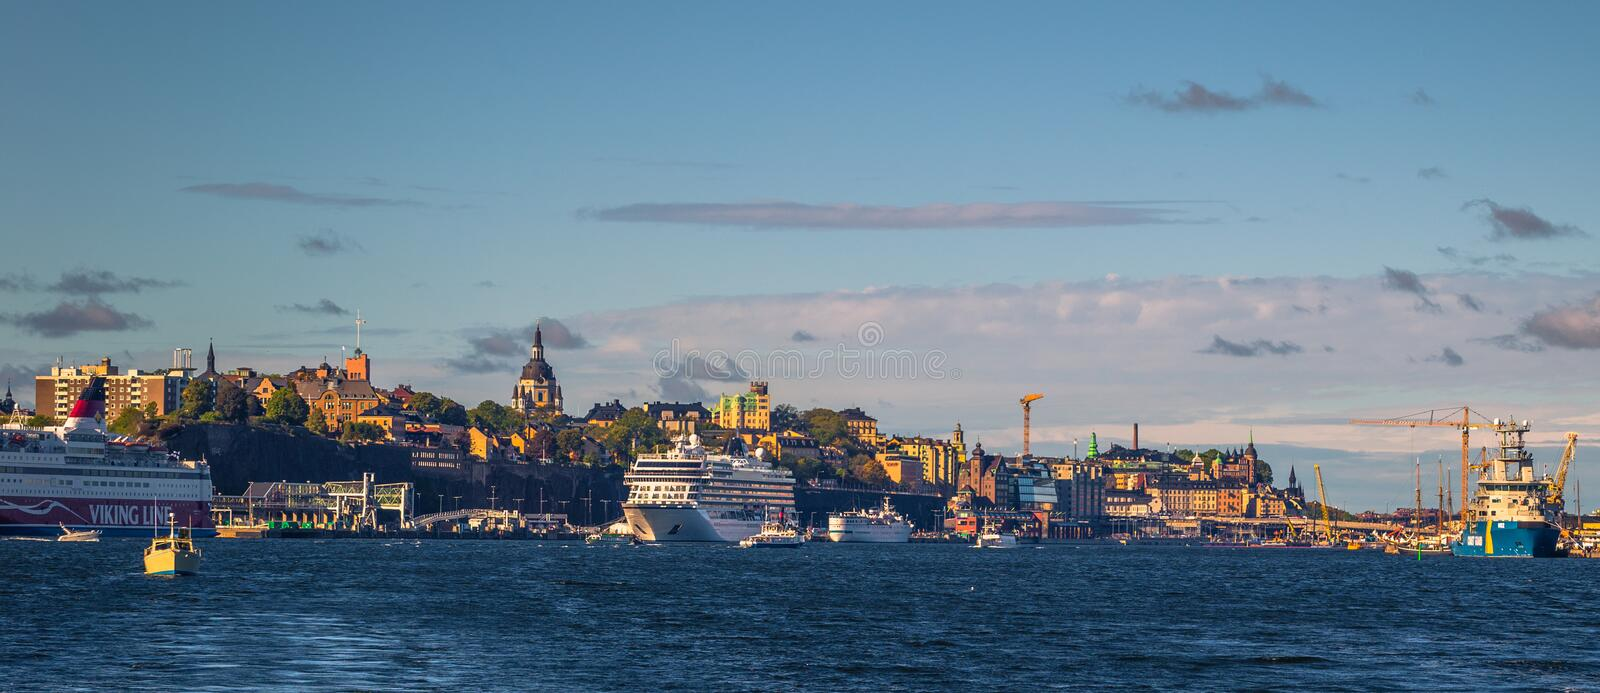 Stockholm - September 23, 2018: Historic building in Stockholm seen from the Swedish Archipelago, Sweden stock photography